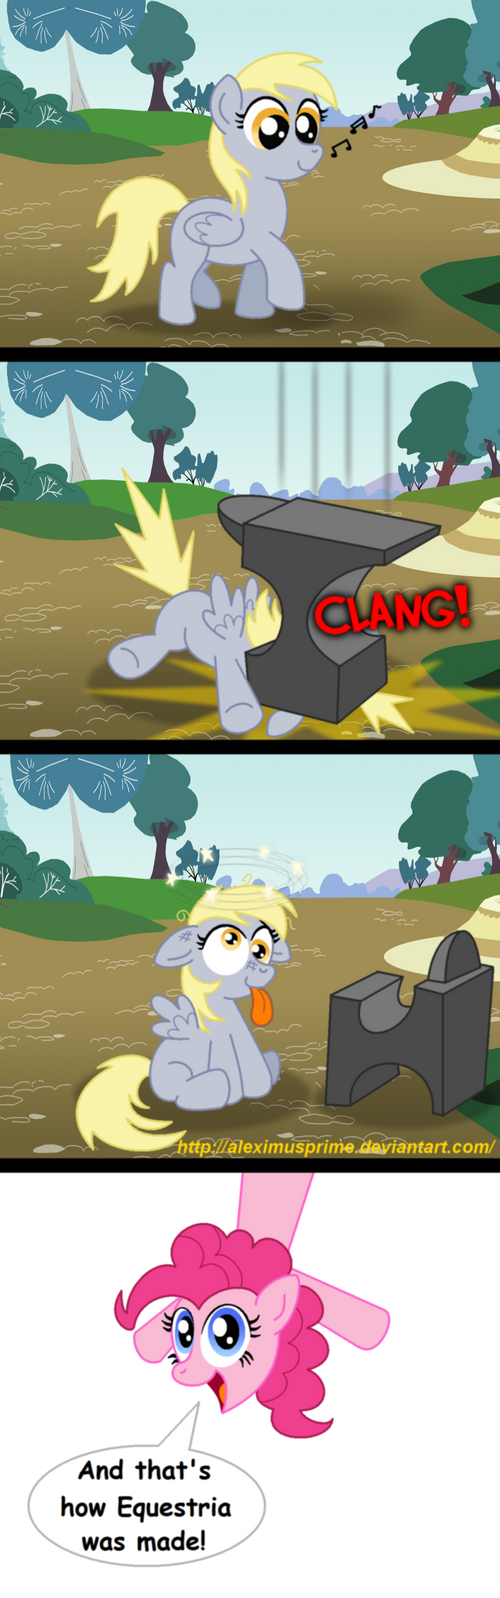 The Origin of Derpy Hooves by AleximusPrime